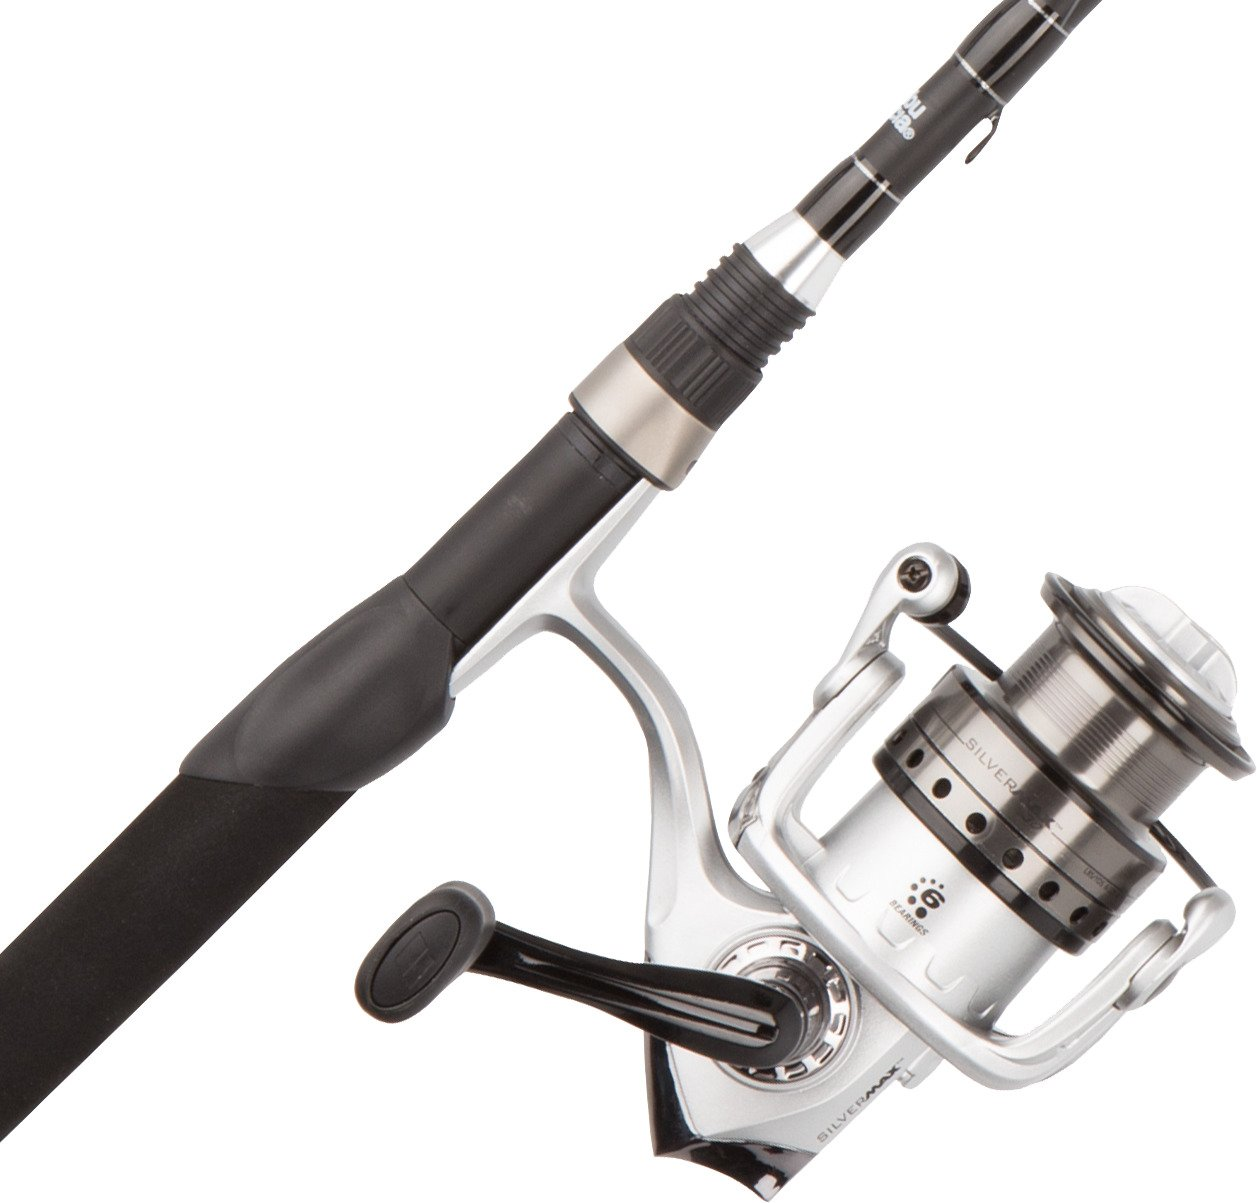 Abu Garcia® Silver Max® 7' M Spinning Rod and Reel Combo - view number 1